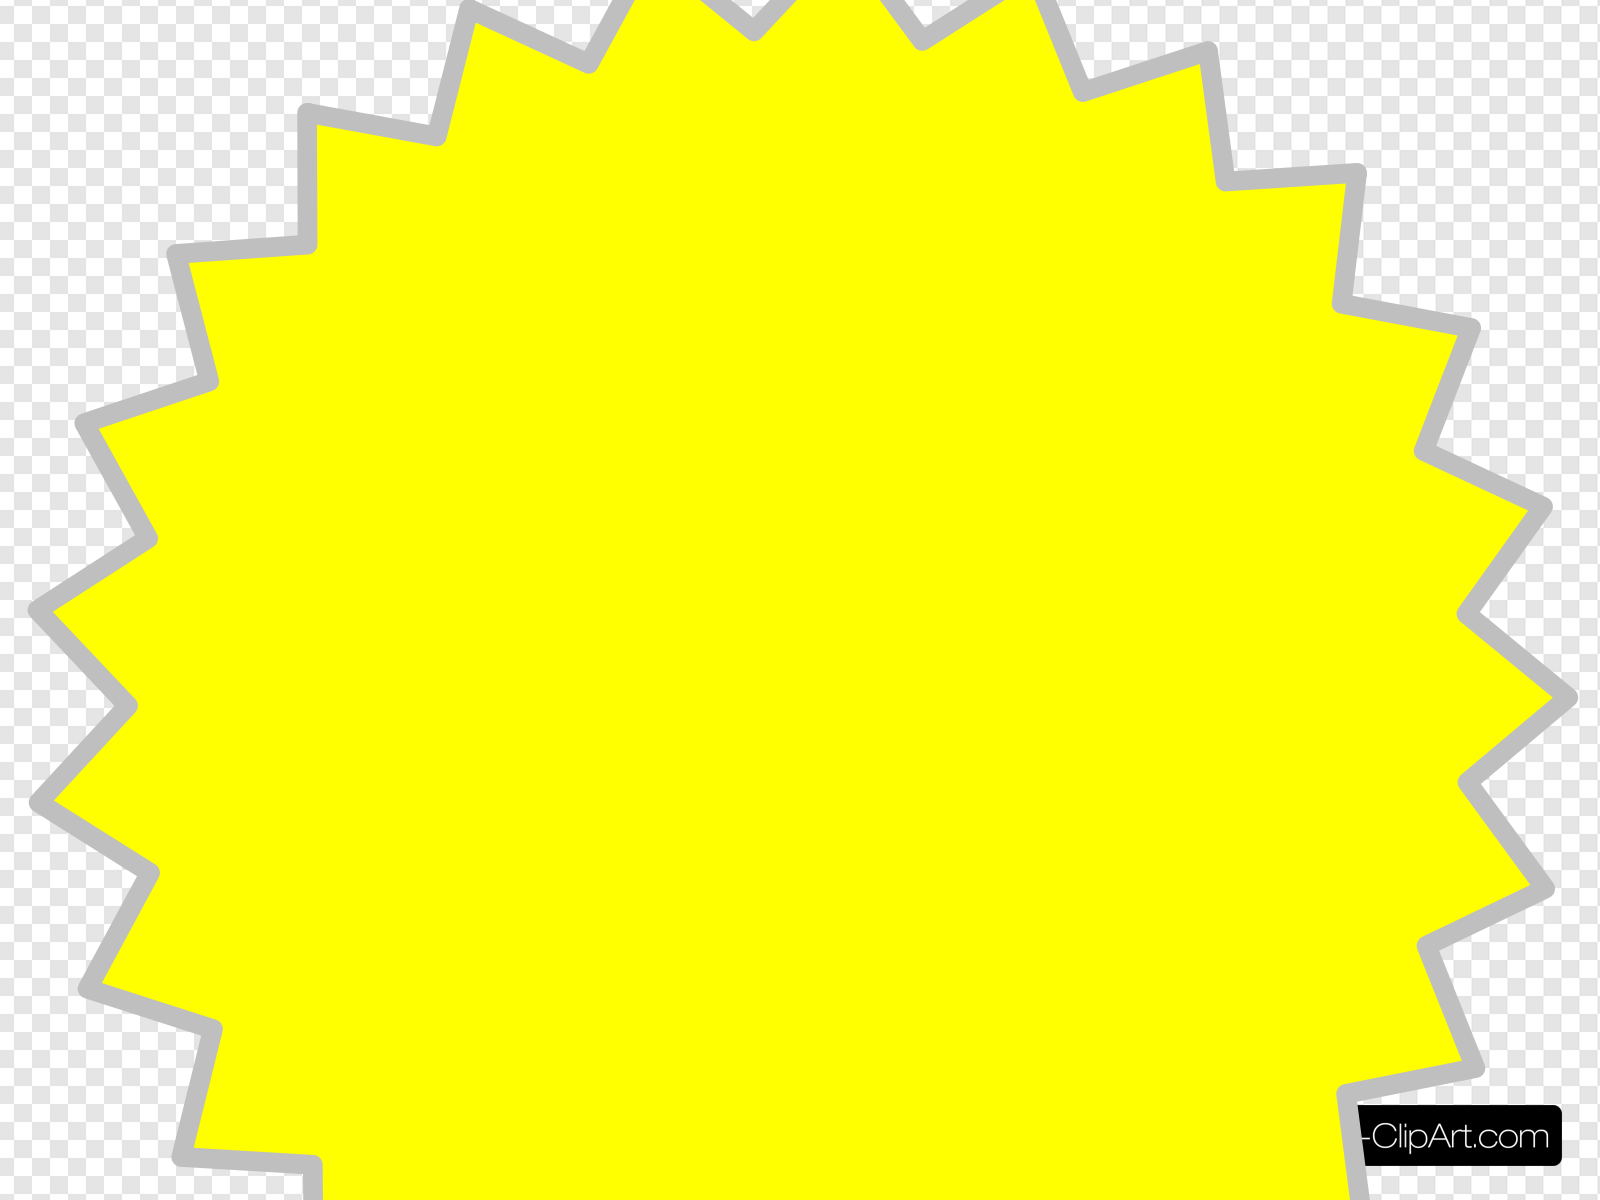 Burst clipart yellow. Clip art icon and